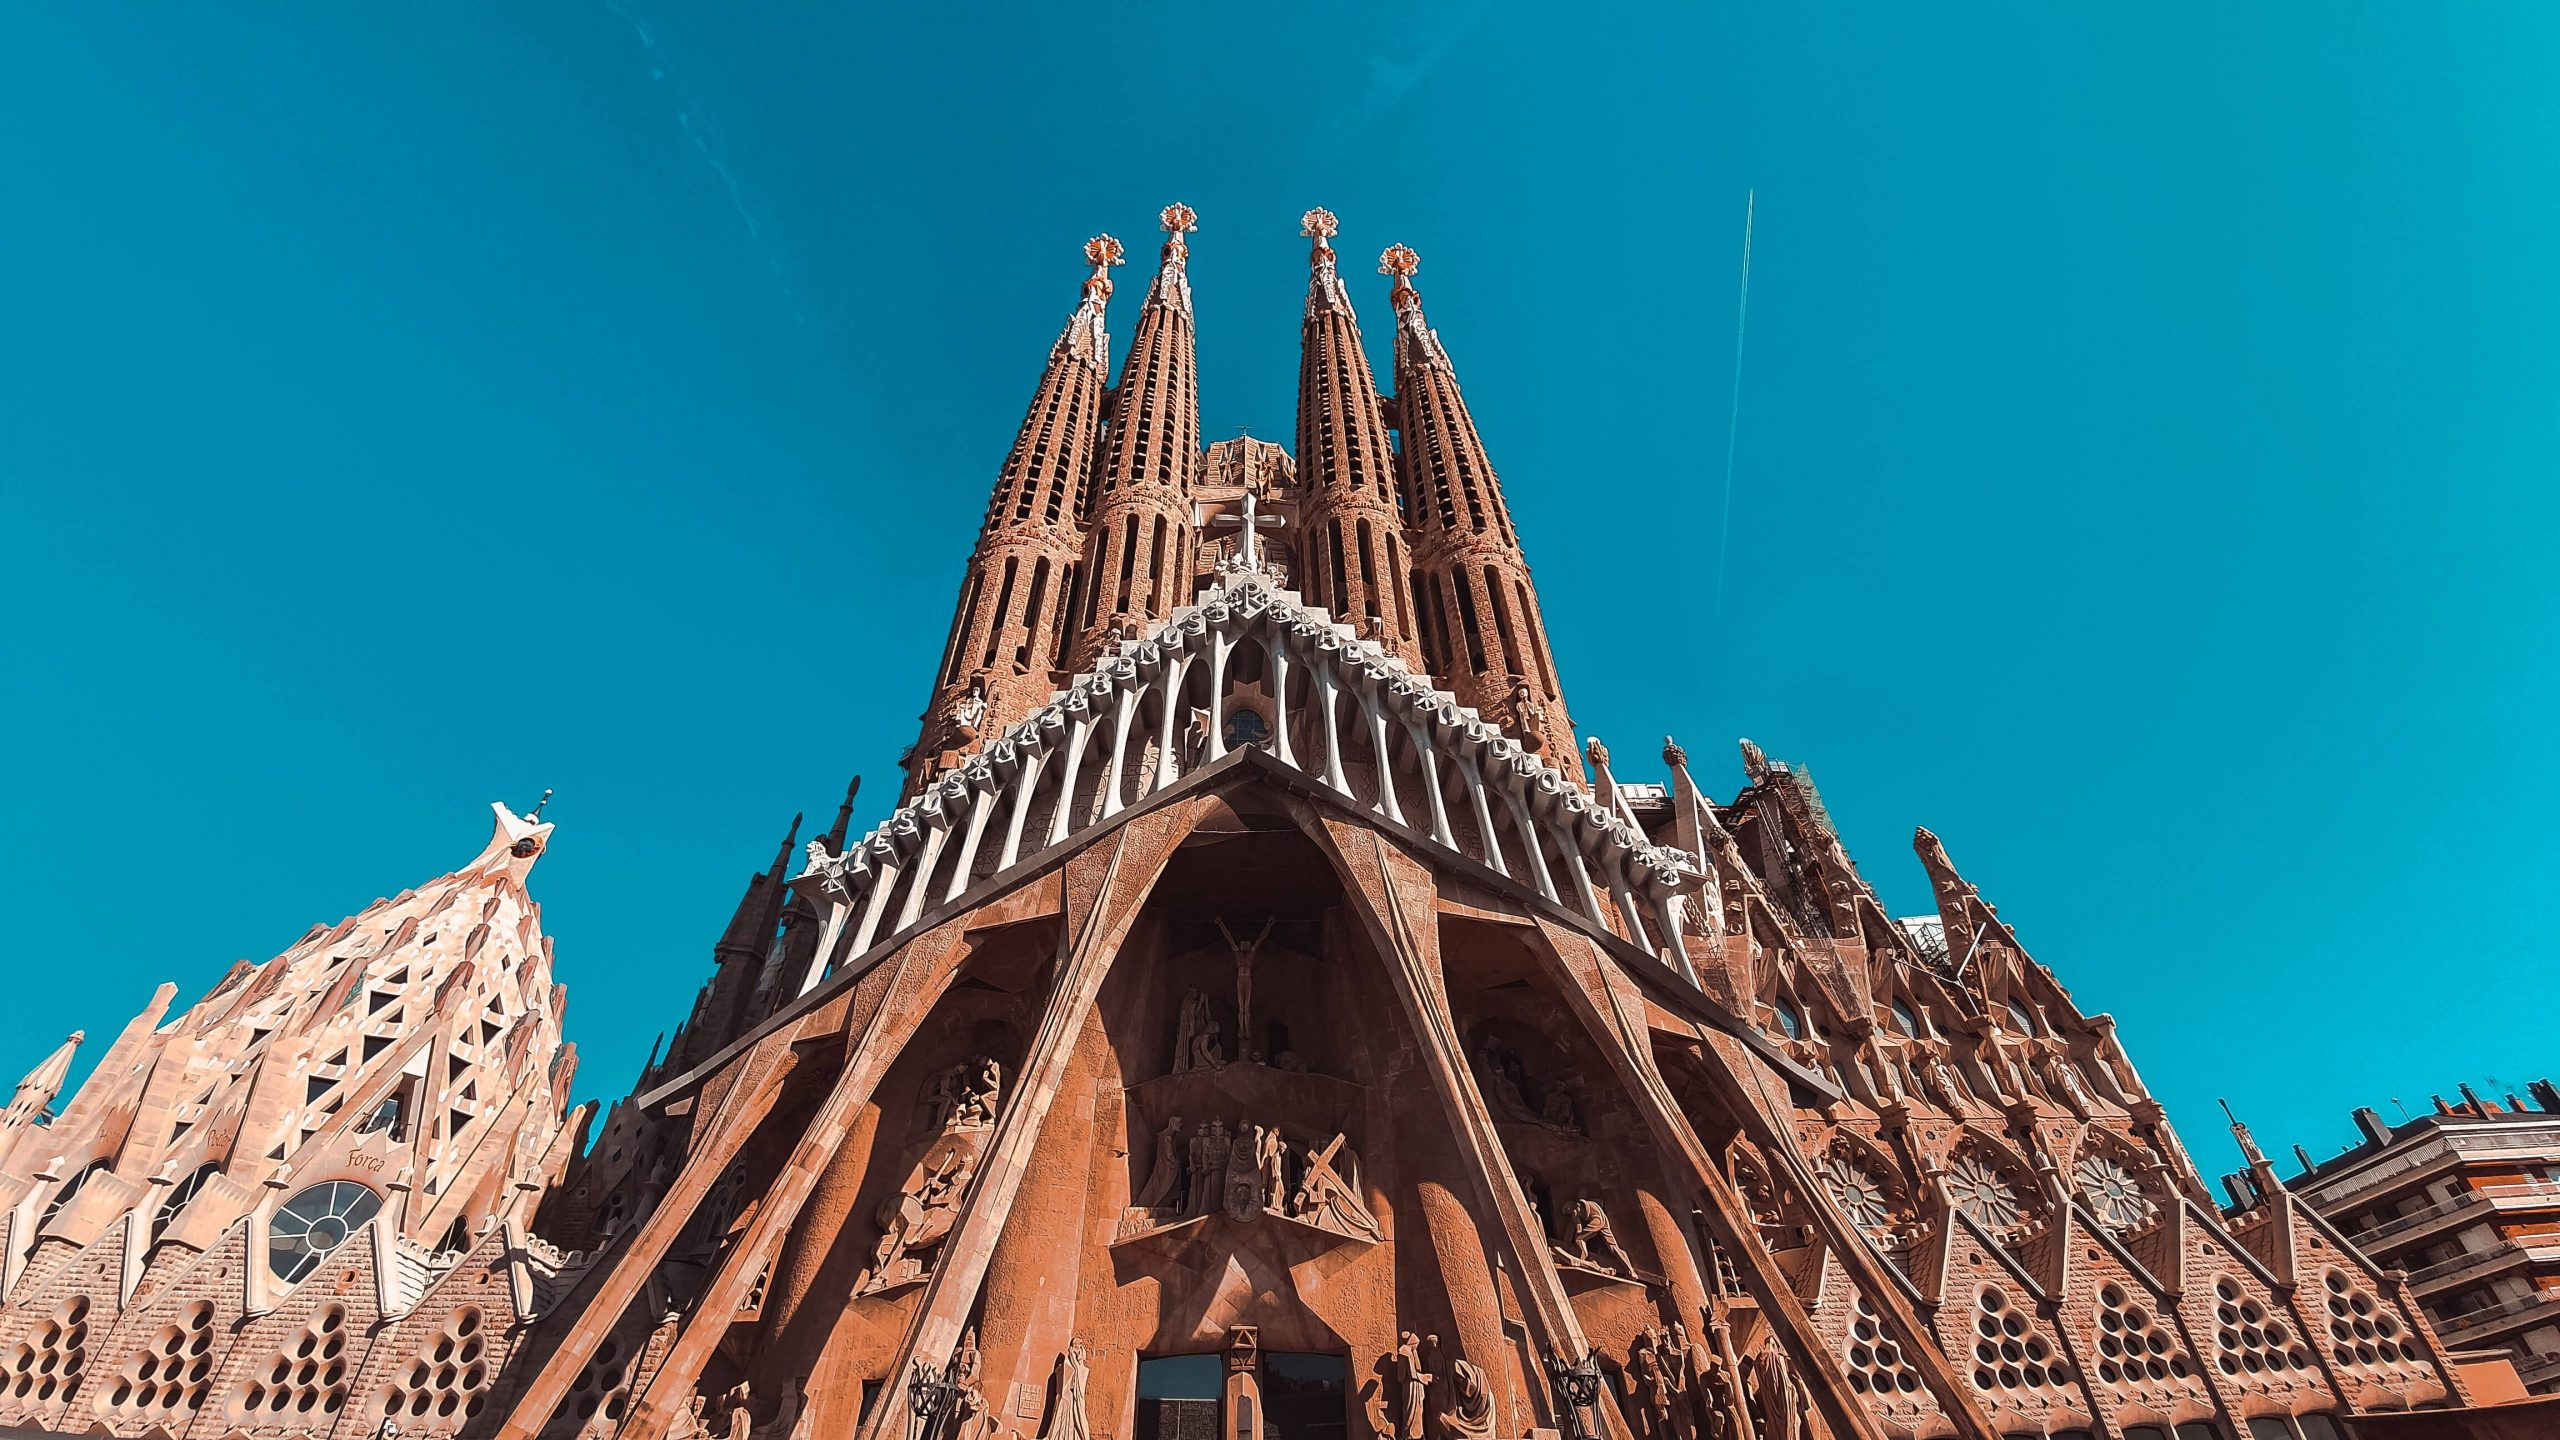 An image of La Sagrada Familia church, in Barcelona.